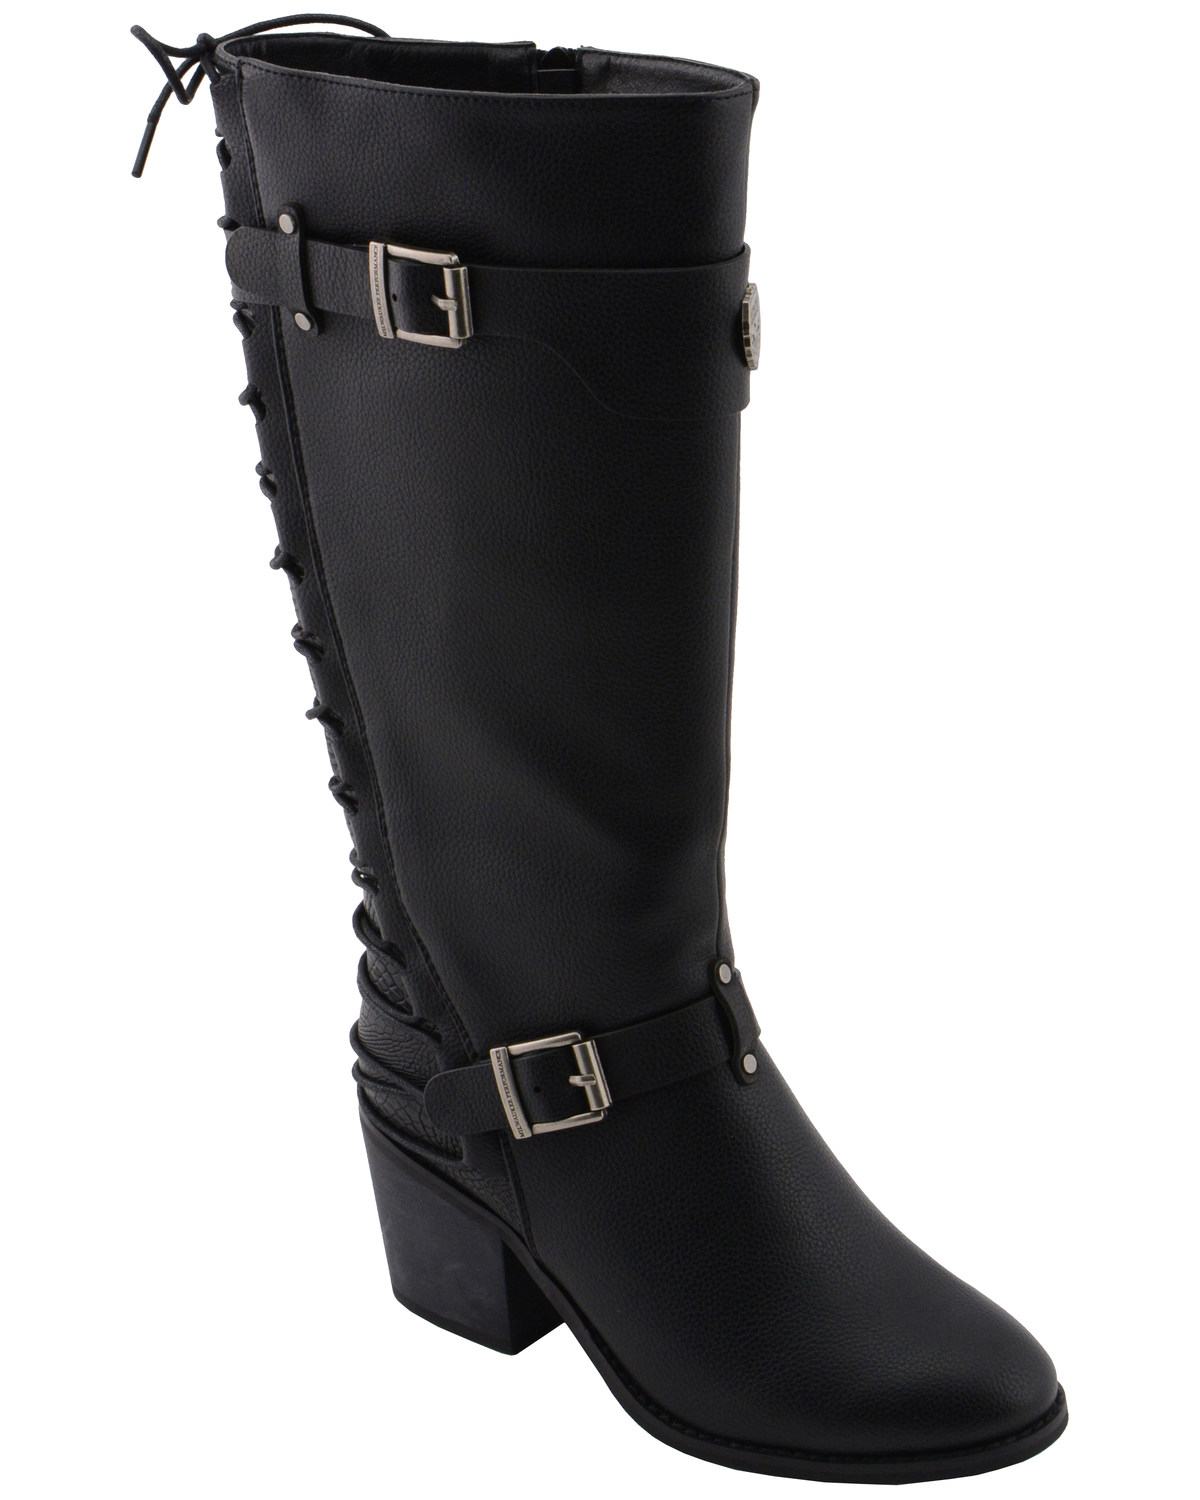 7152a4eacc8 Milwaukee Leather Women's Back End Laced Riding Boots - Round Toe